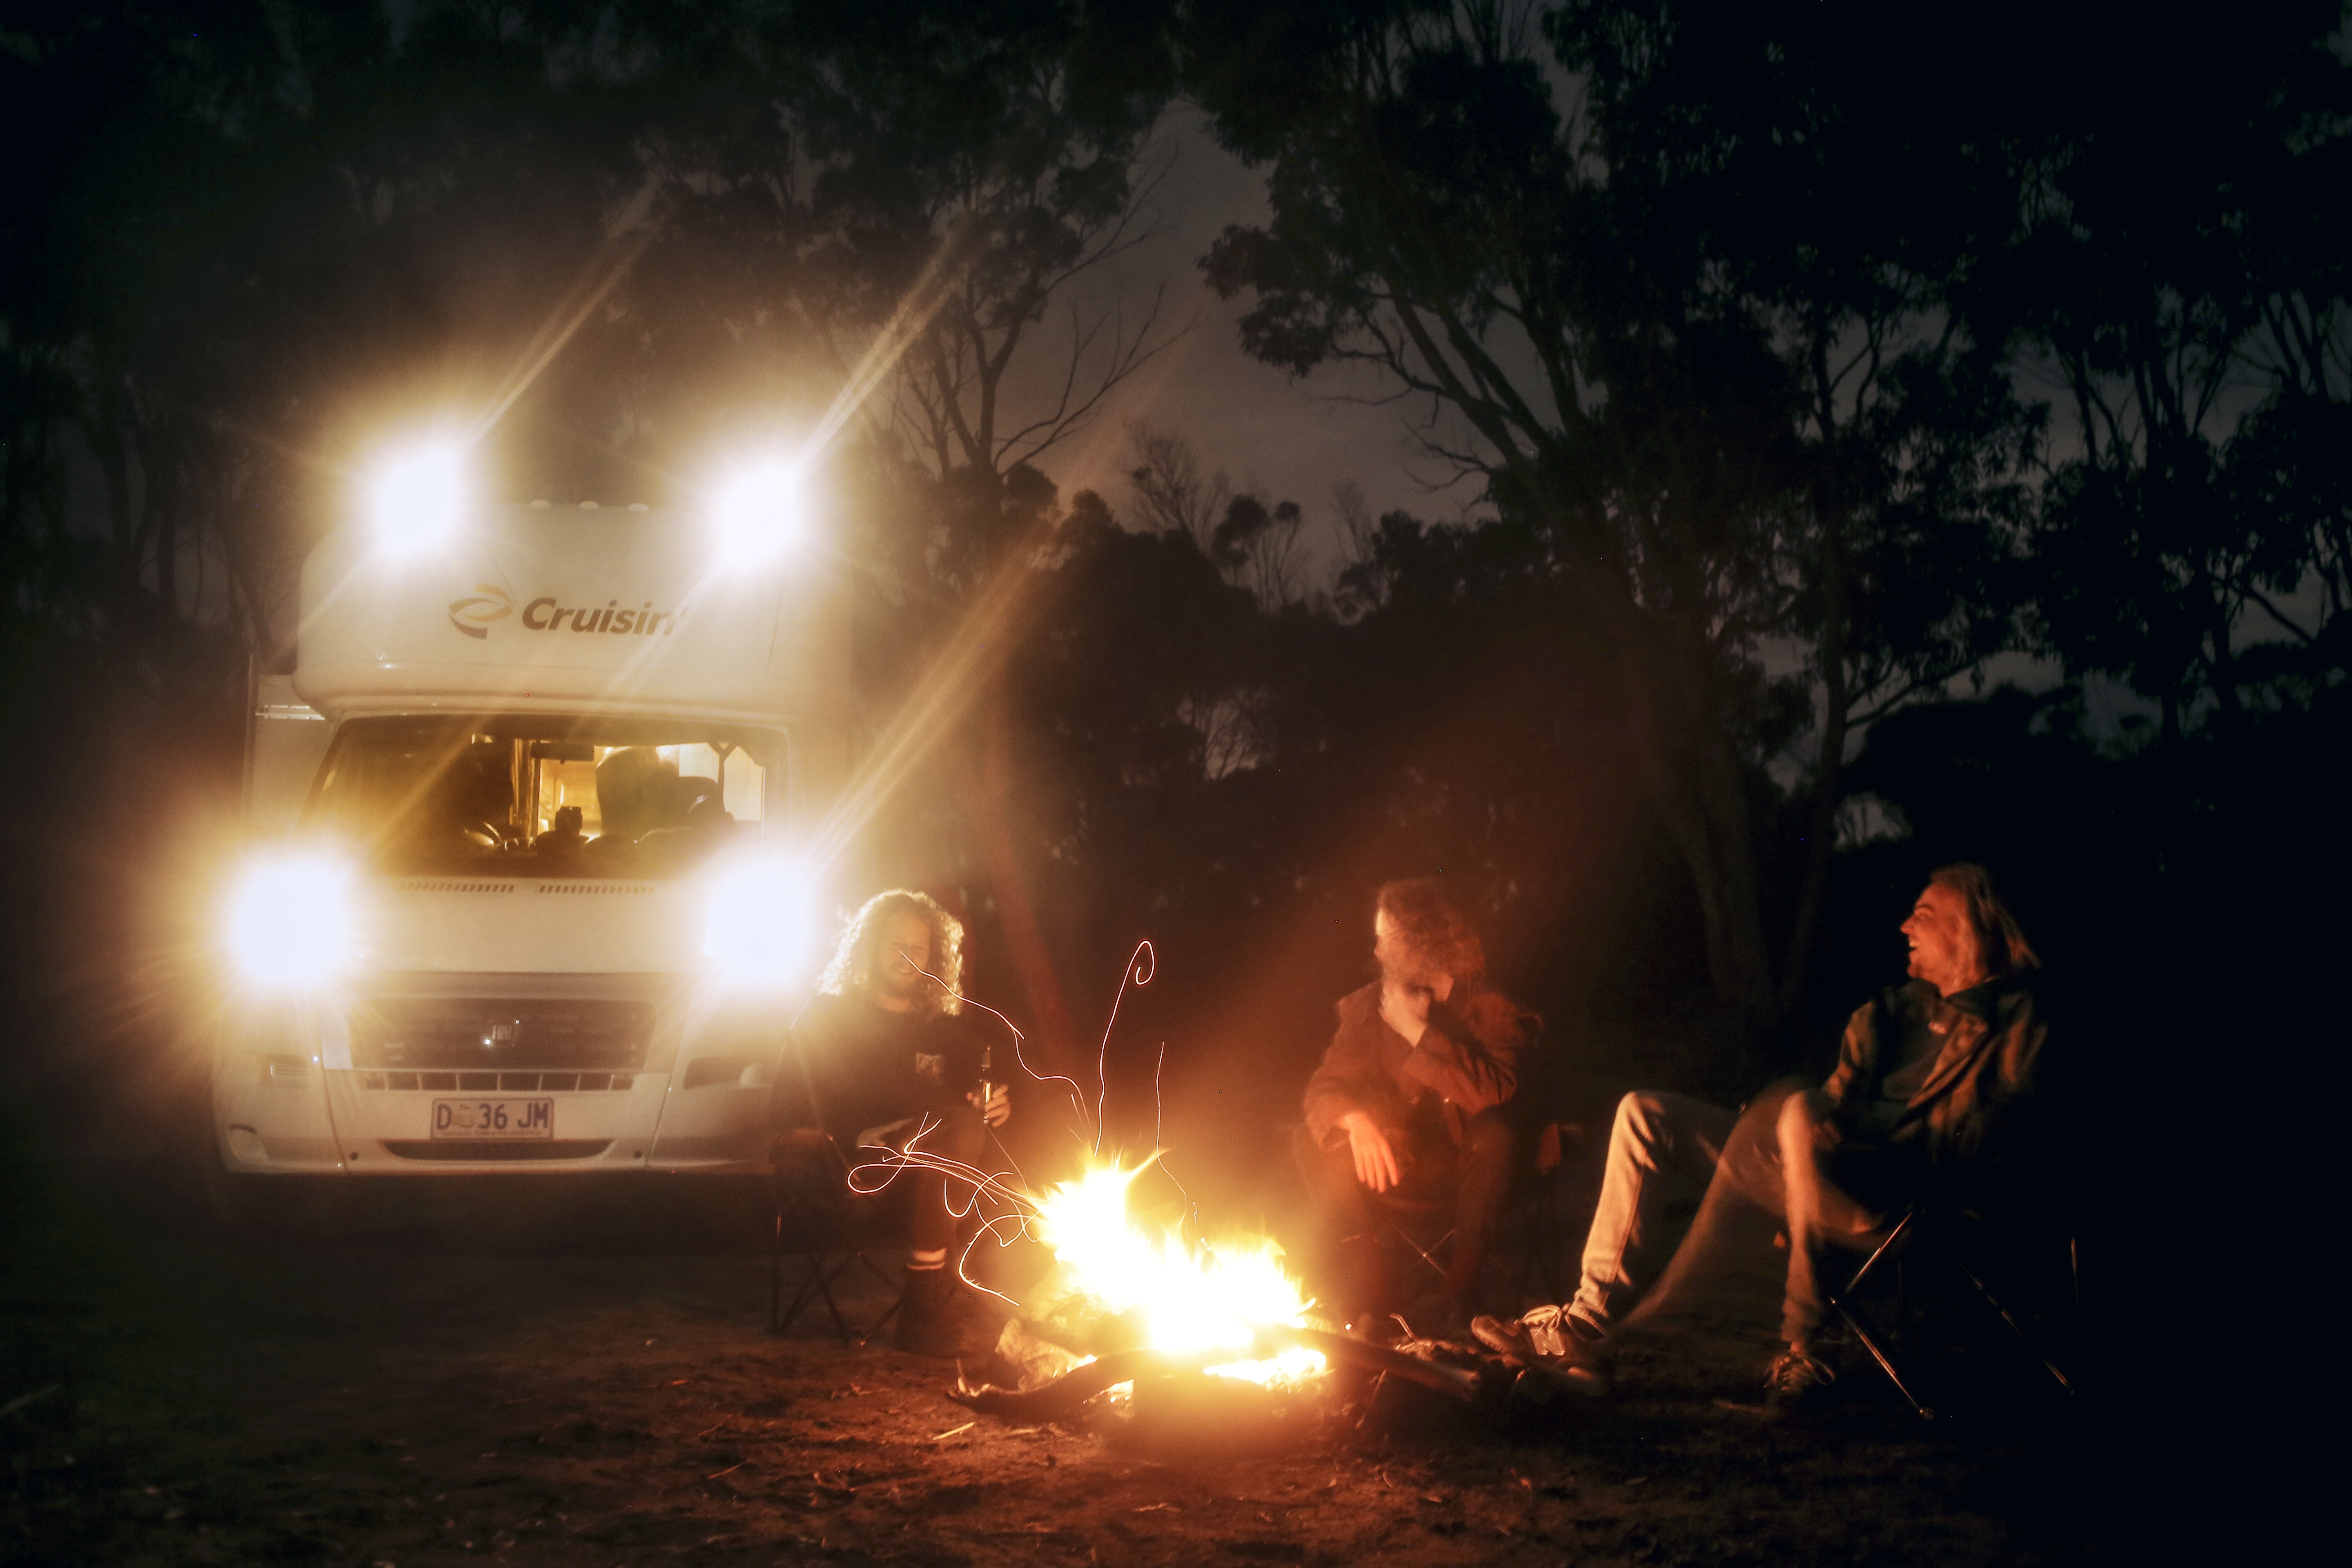 How To Enjoy A Motorhome Holiday With Friends - Cruisin Motorhome Rentals Australia